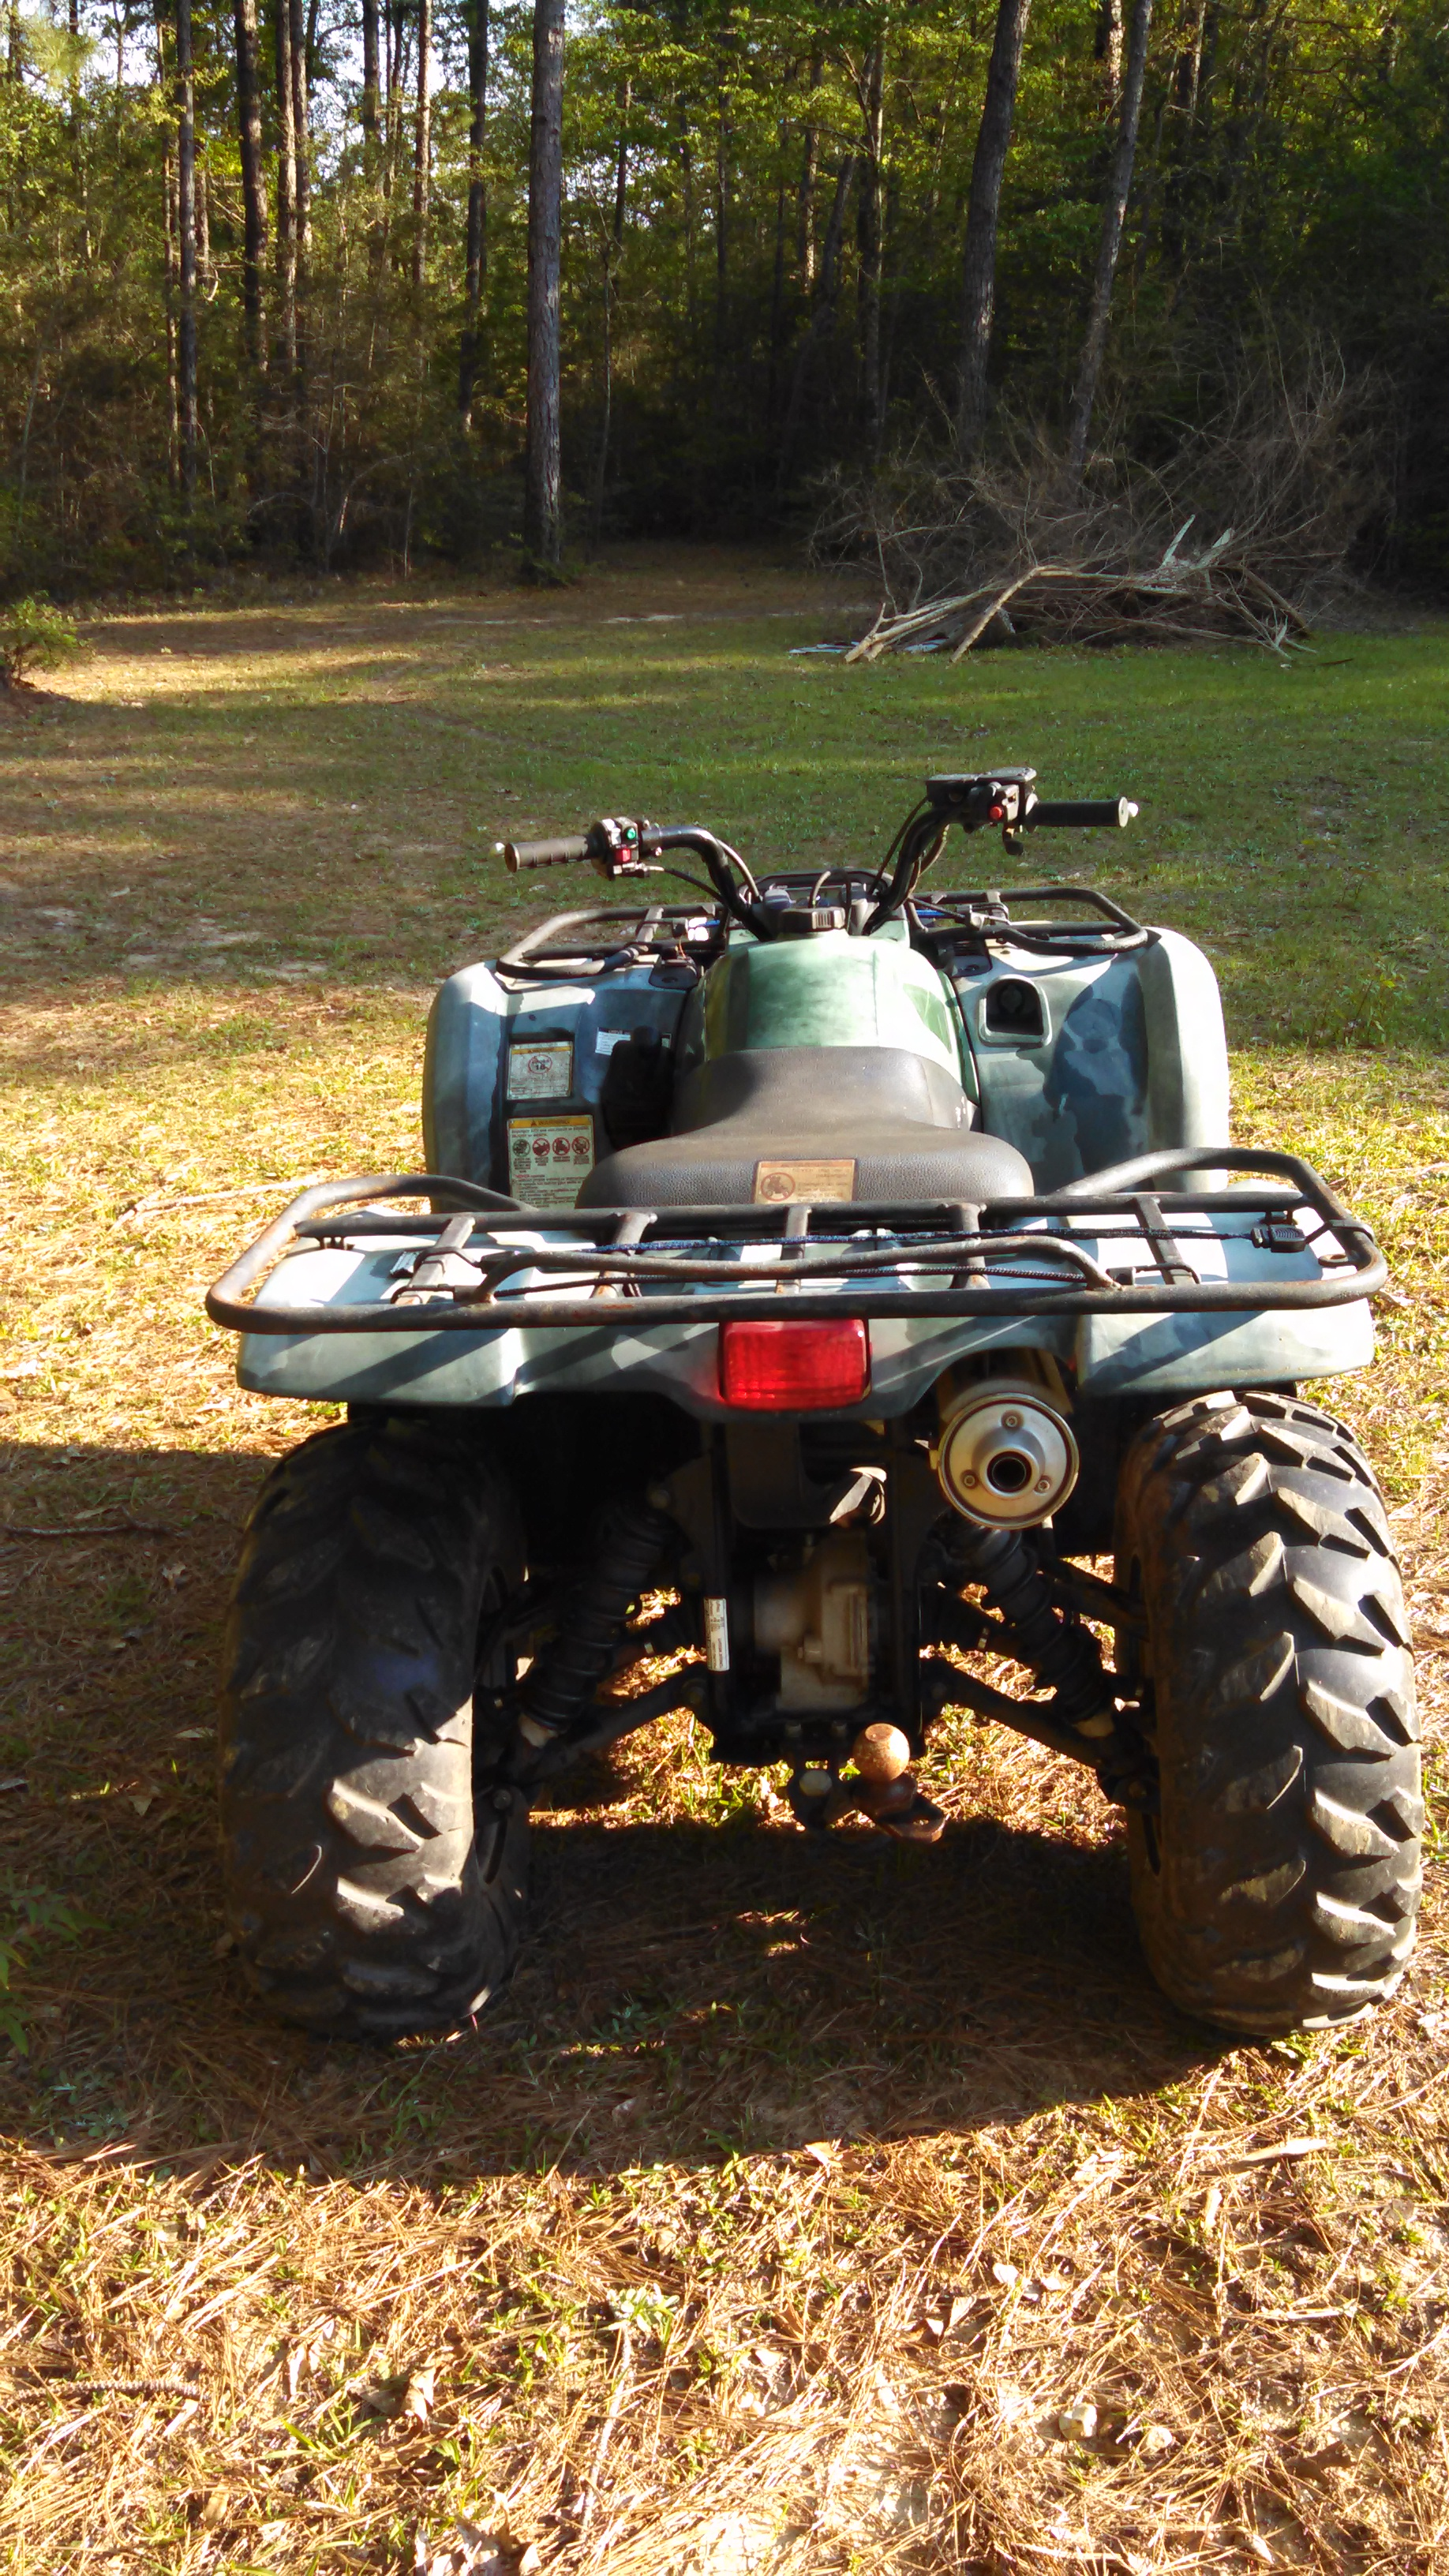 Yamaha Atv For Sale >> For Sale 2007 Yamaha Grizzly 450 - low miles and hours ...